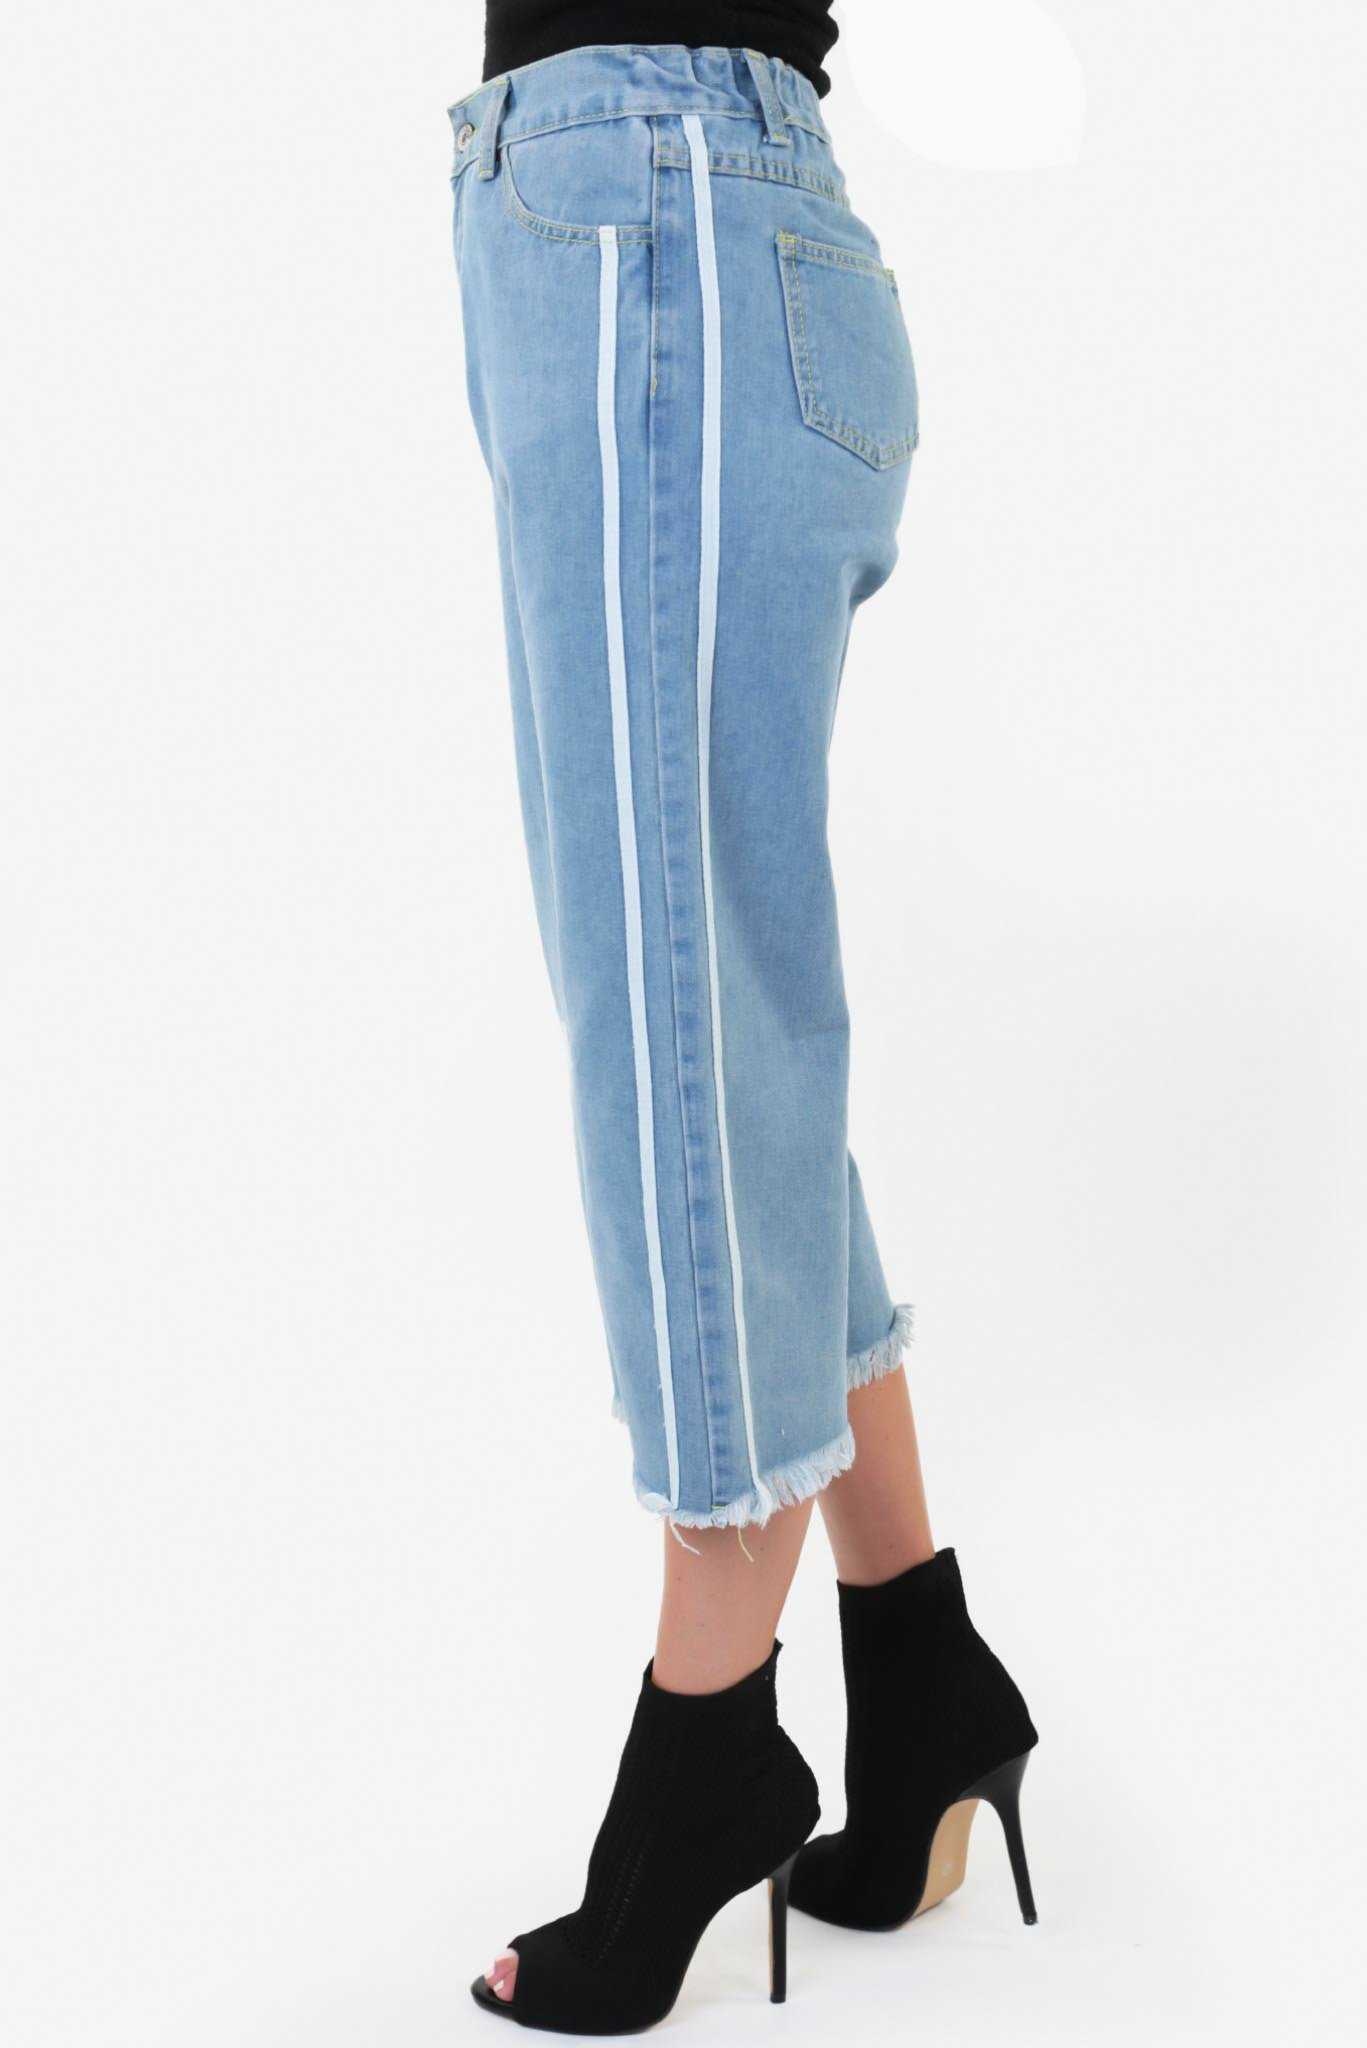 Contrast Stripes Denim Pants | Raw Orange